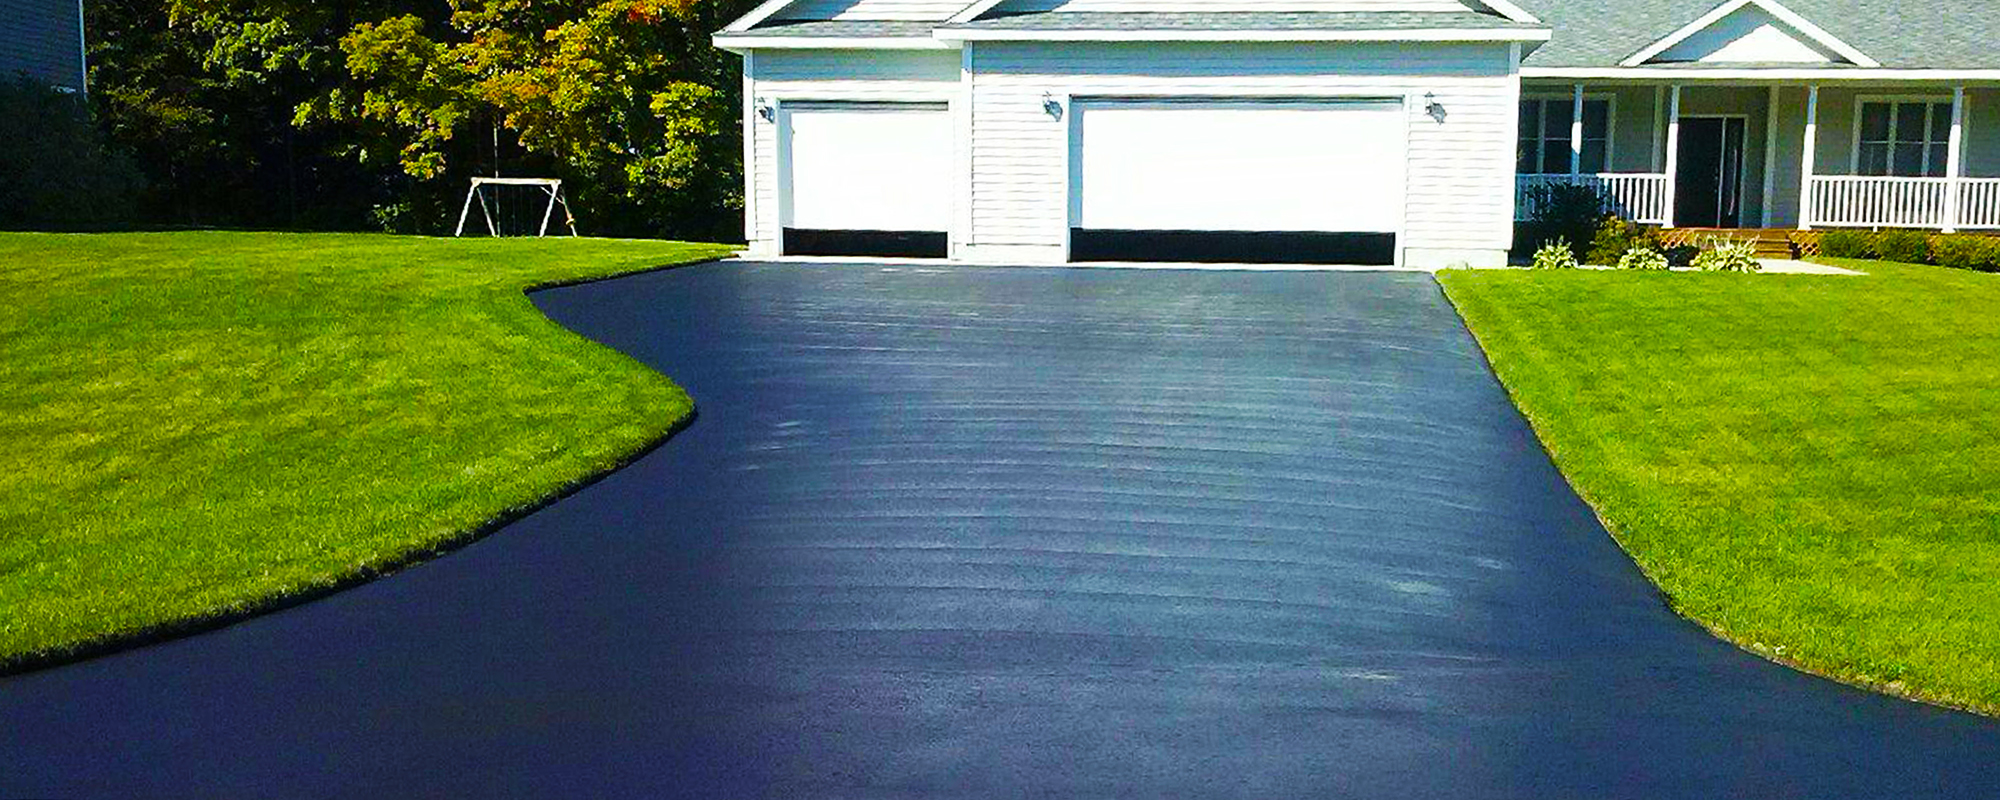 Driveway SealCoating and Repair in Traverse City, Michigan